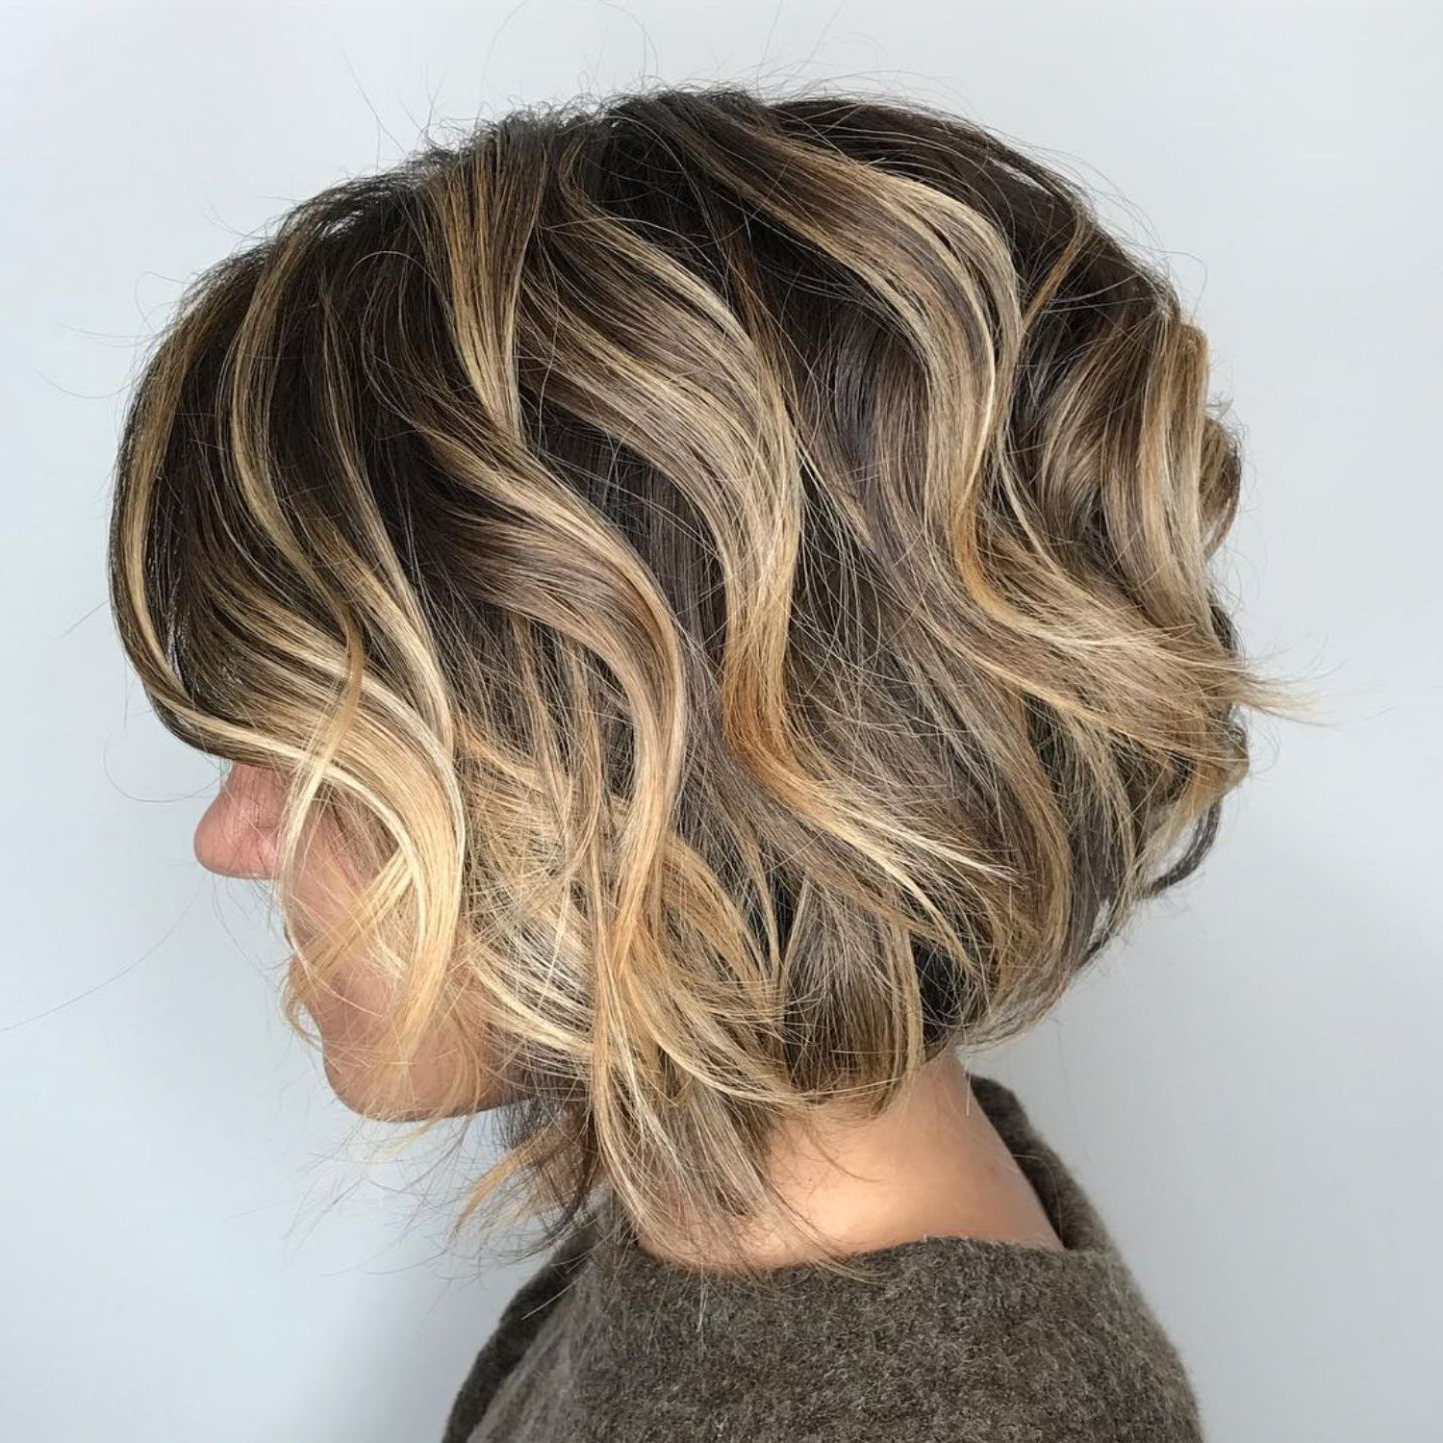 Preferred Curly Bronde Haircuts With Choppy Ends For 60 Layered Bob Styles: Modern Haircuts With Layers For Any (View 3 of 20)